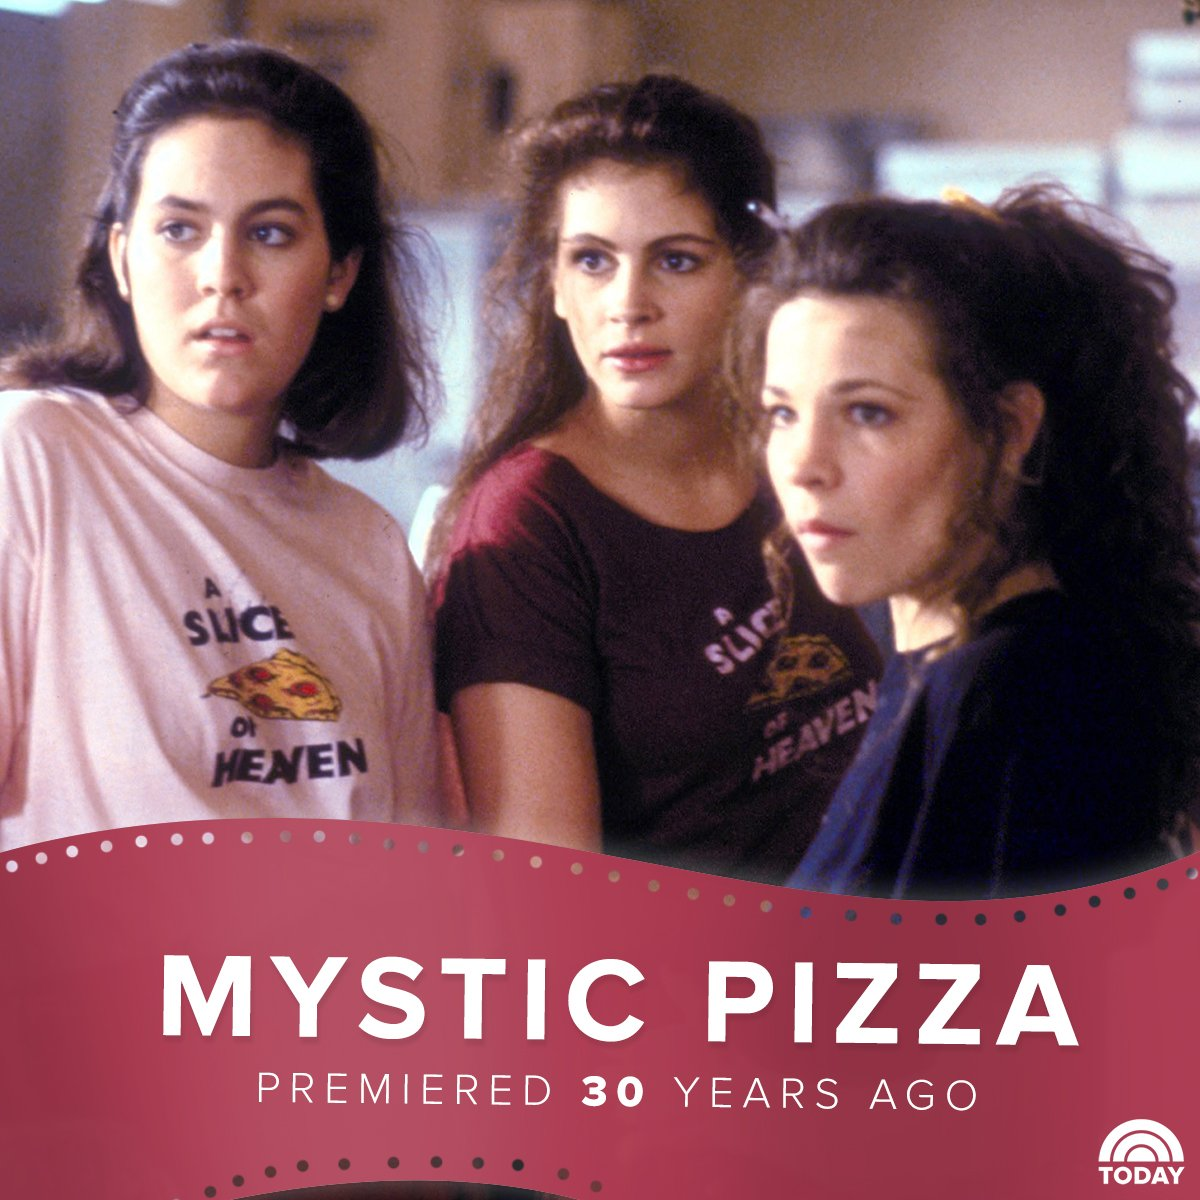 Treat yourself to a slice of heaven! 'Mystic Pizza' was released on this day 30 years ago. https://t.co/w3Uylrc0qS